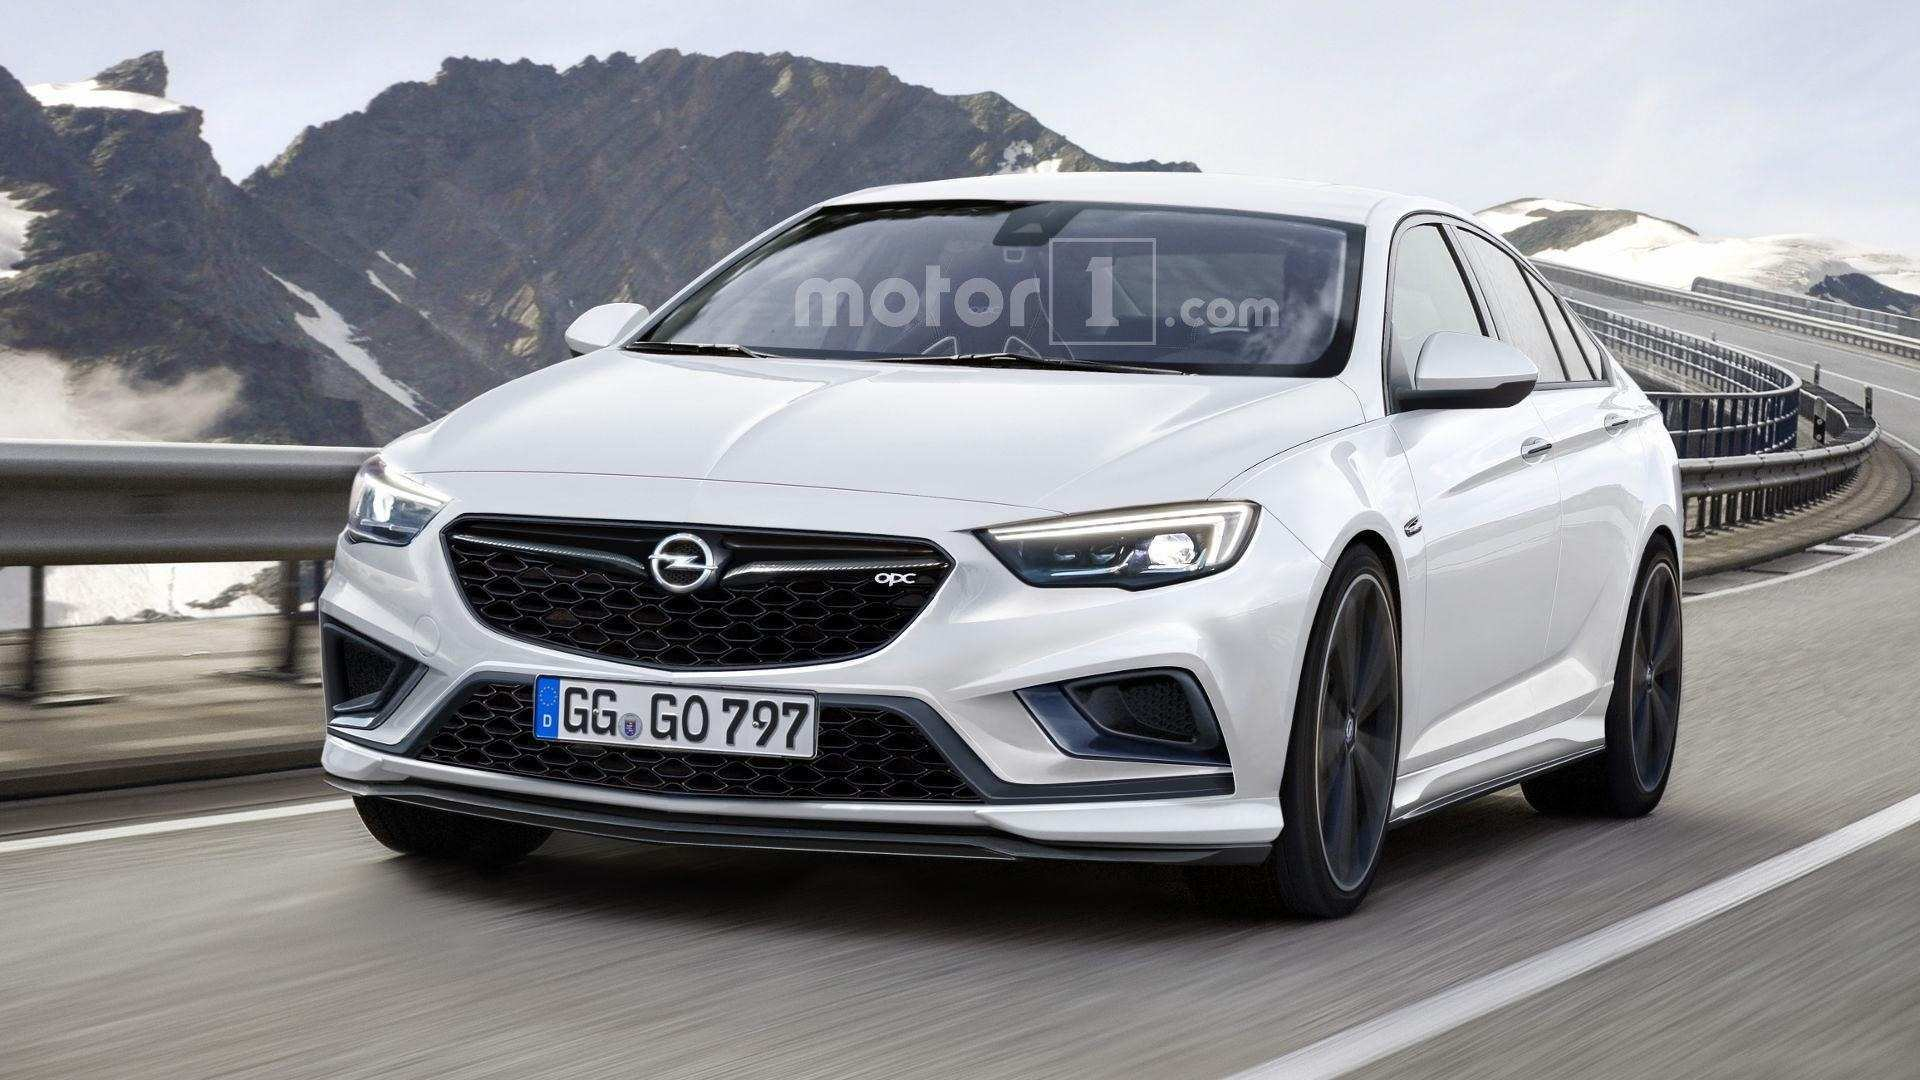 95 All New Opel Insignia 2020 Picture for Opel Insignia 2020